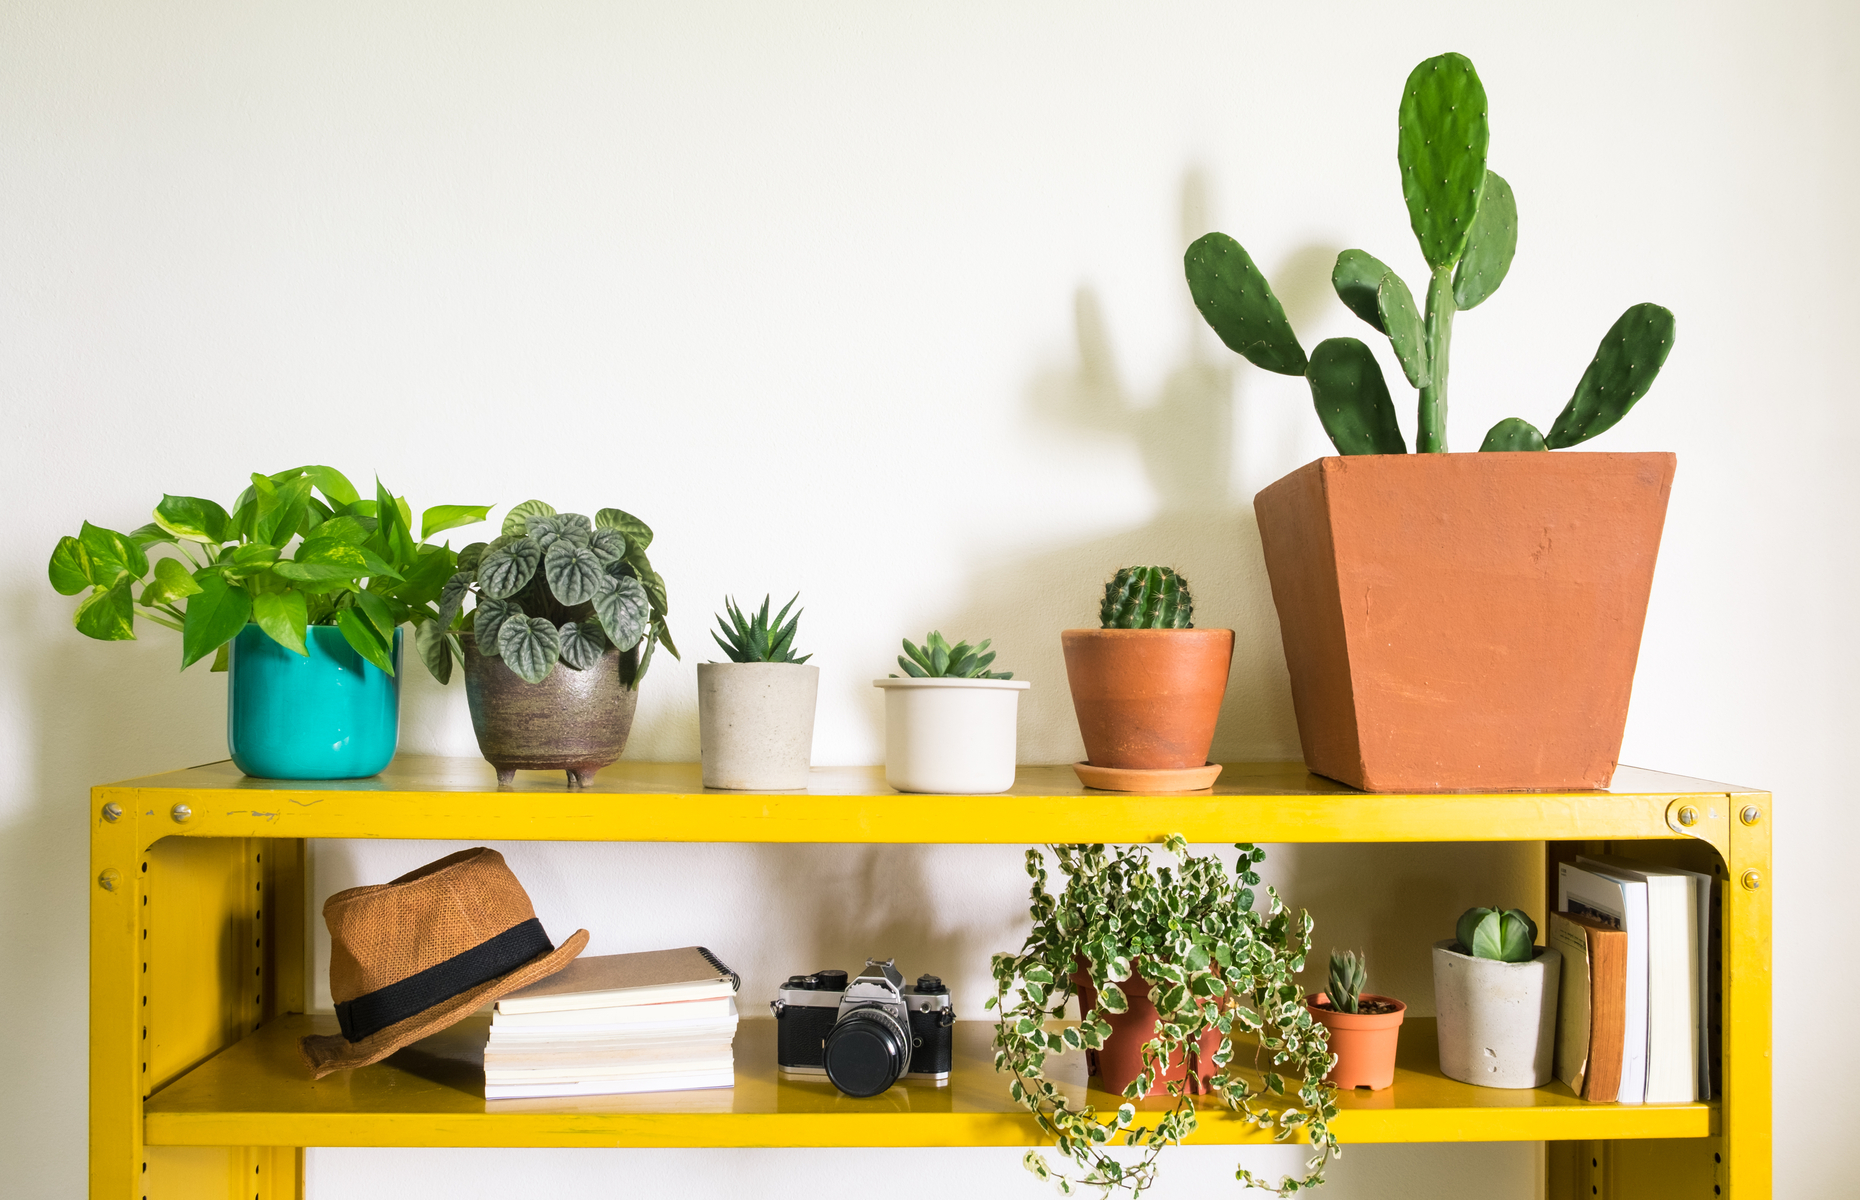 If you don't have a garden, succulents and house plants can bring the great outdoors inside. Image: rattiya lamrod / Shutterstock